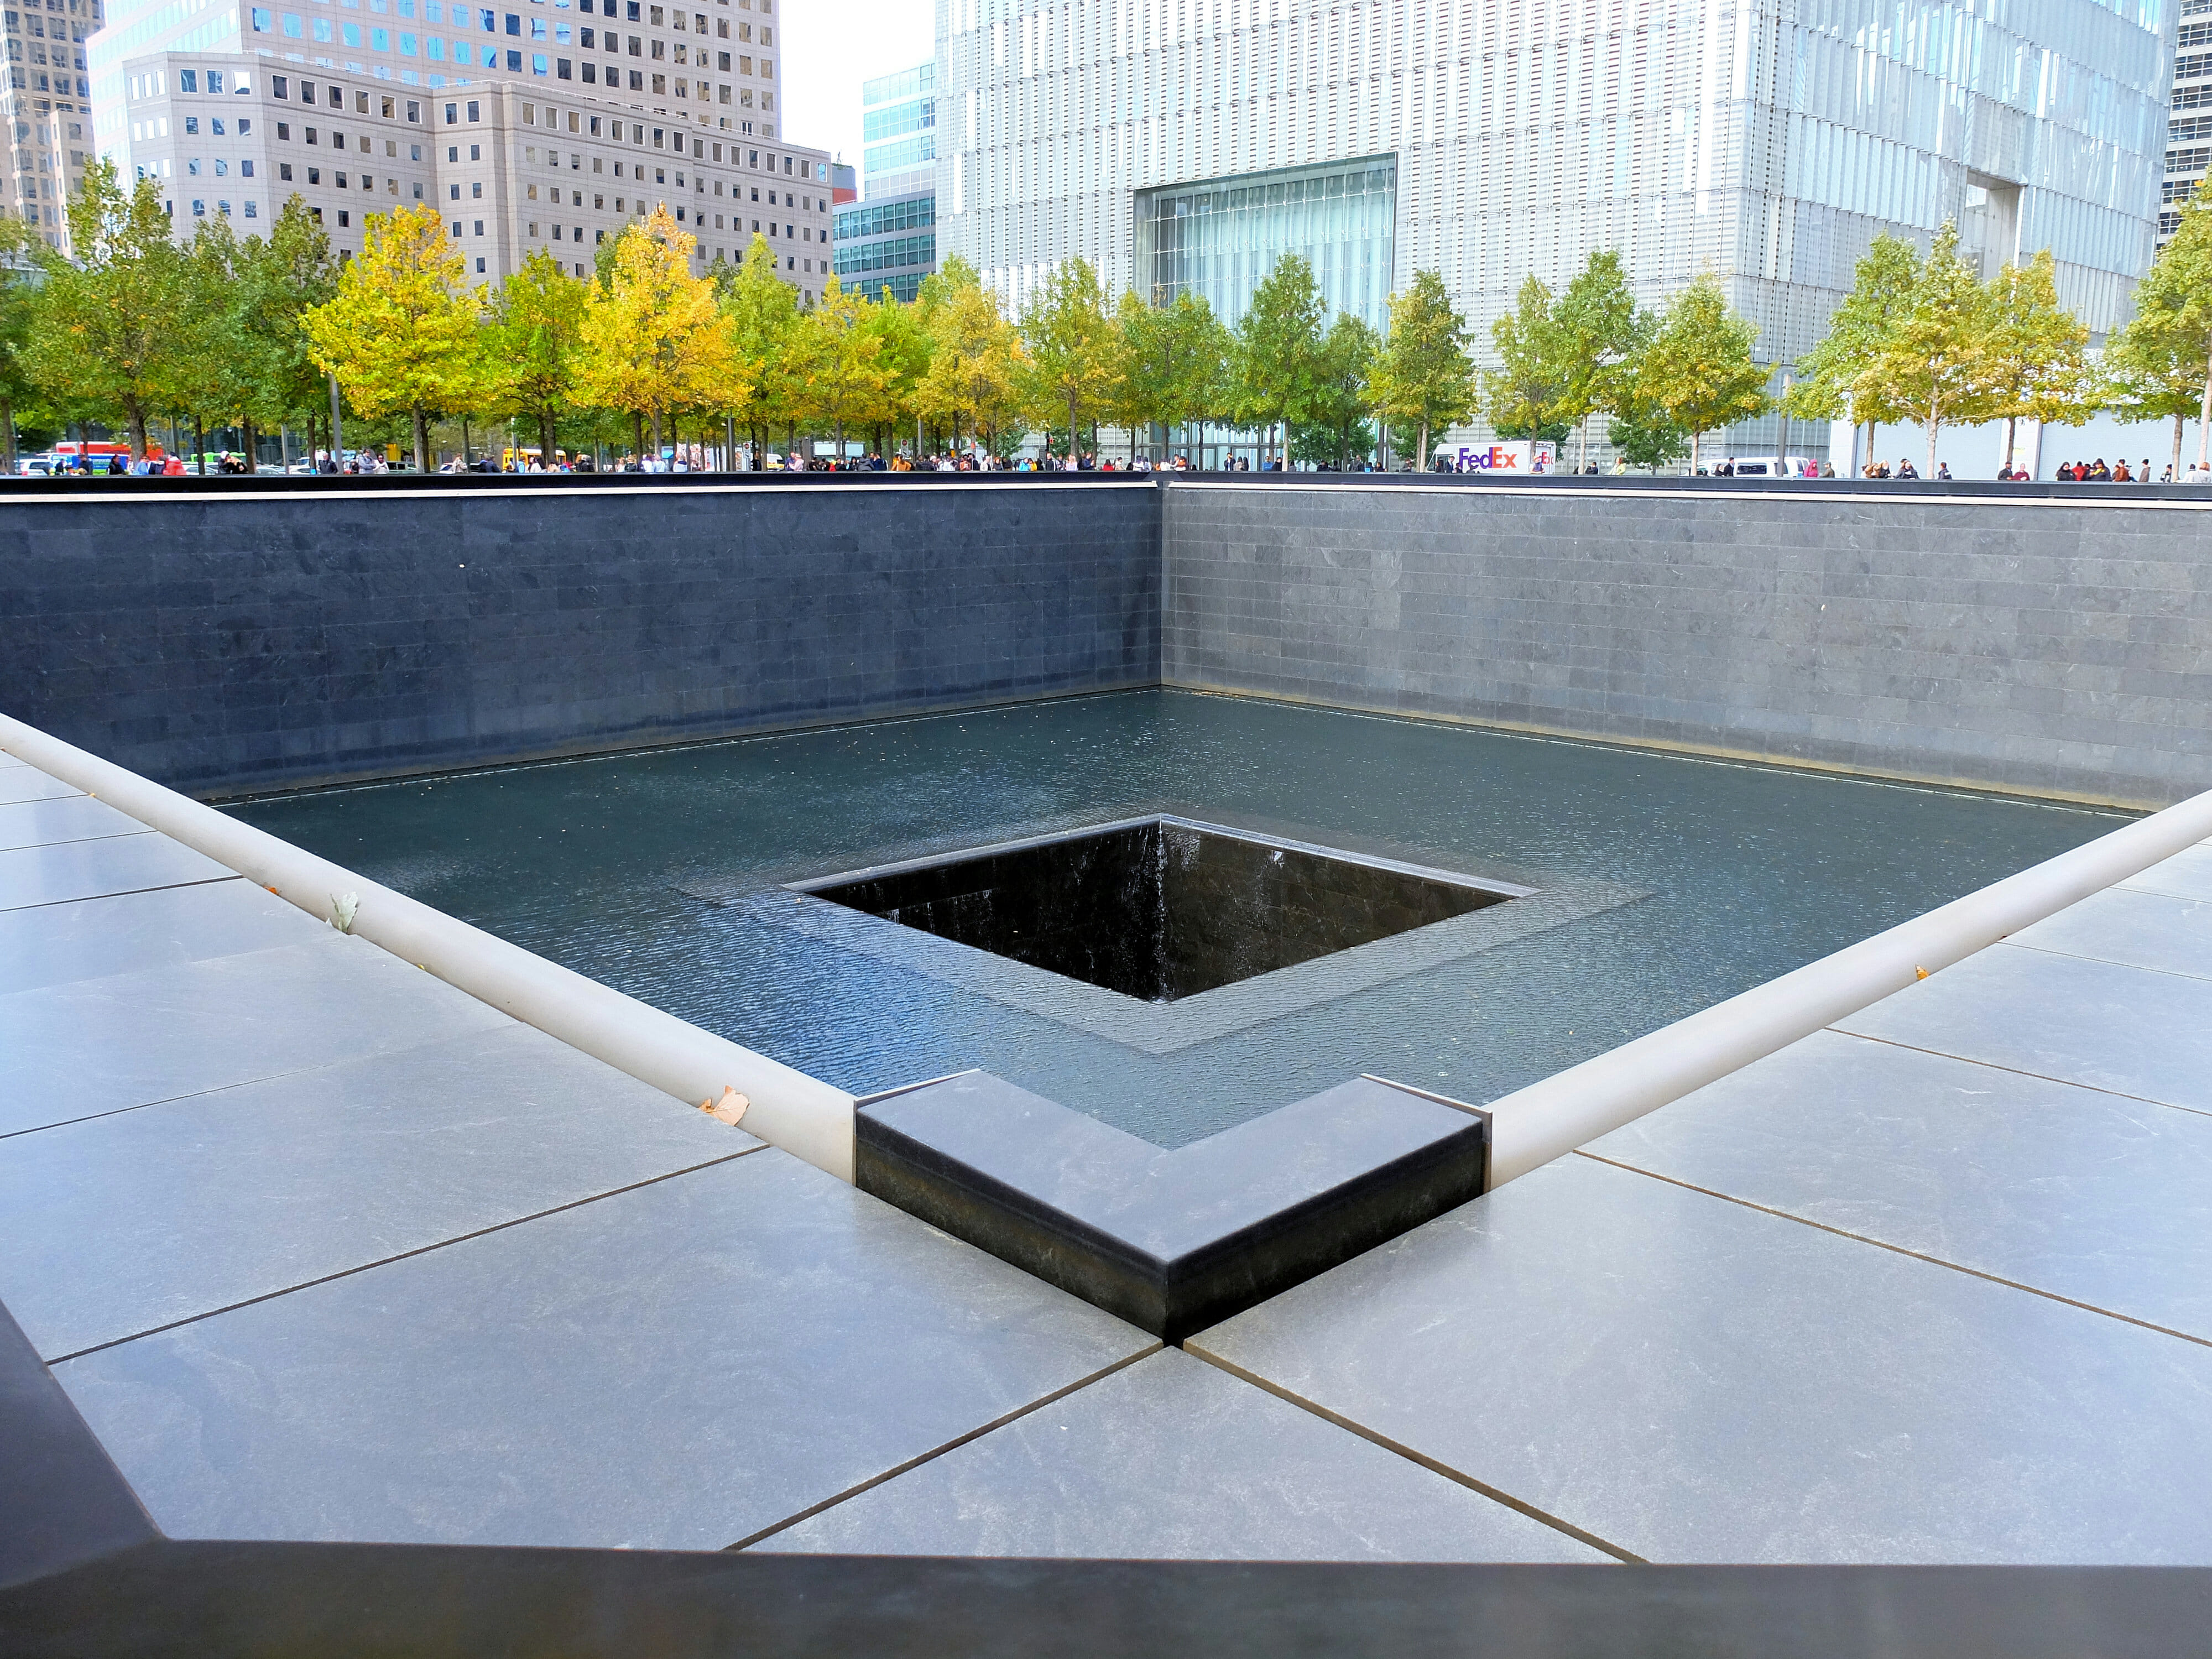 911 Memorial in New York – High Quality Wallpaper